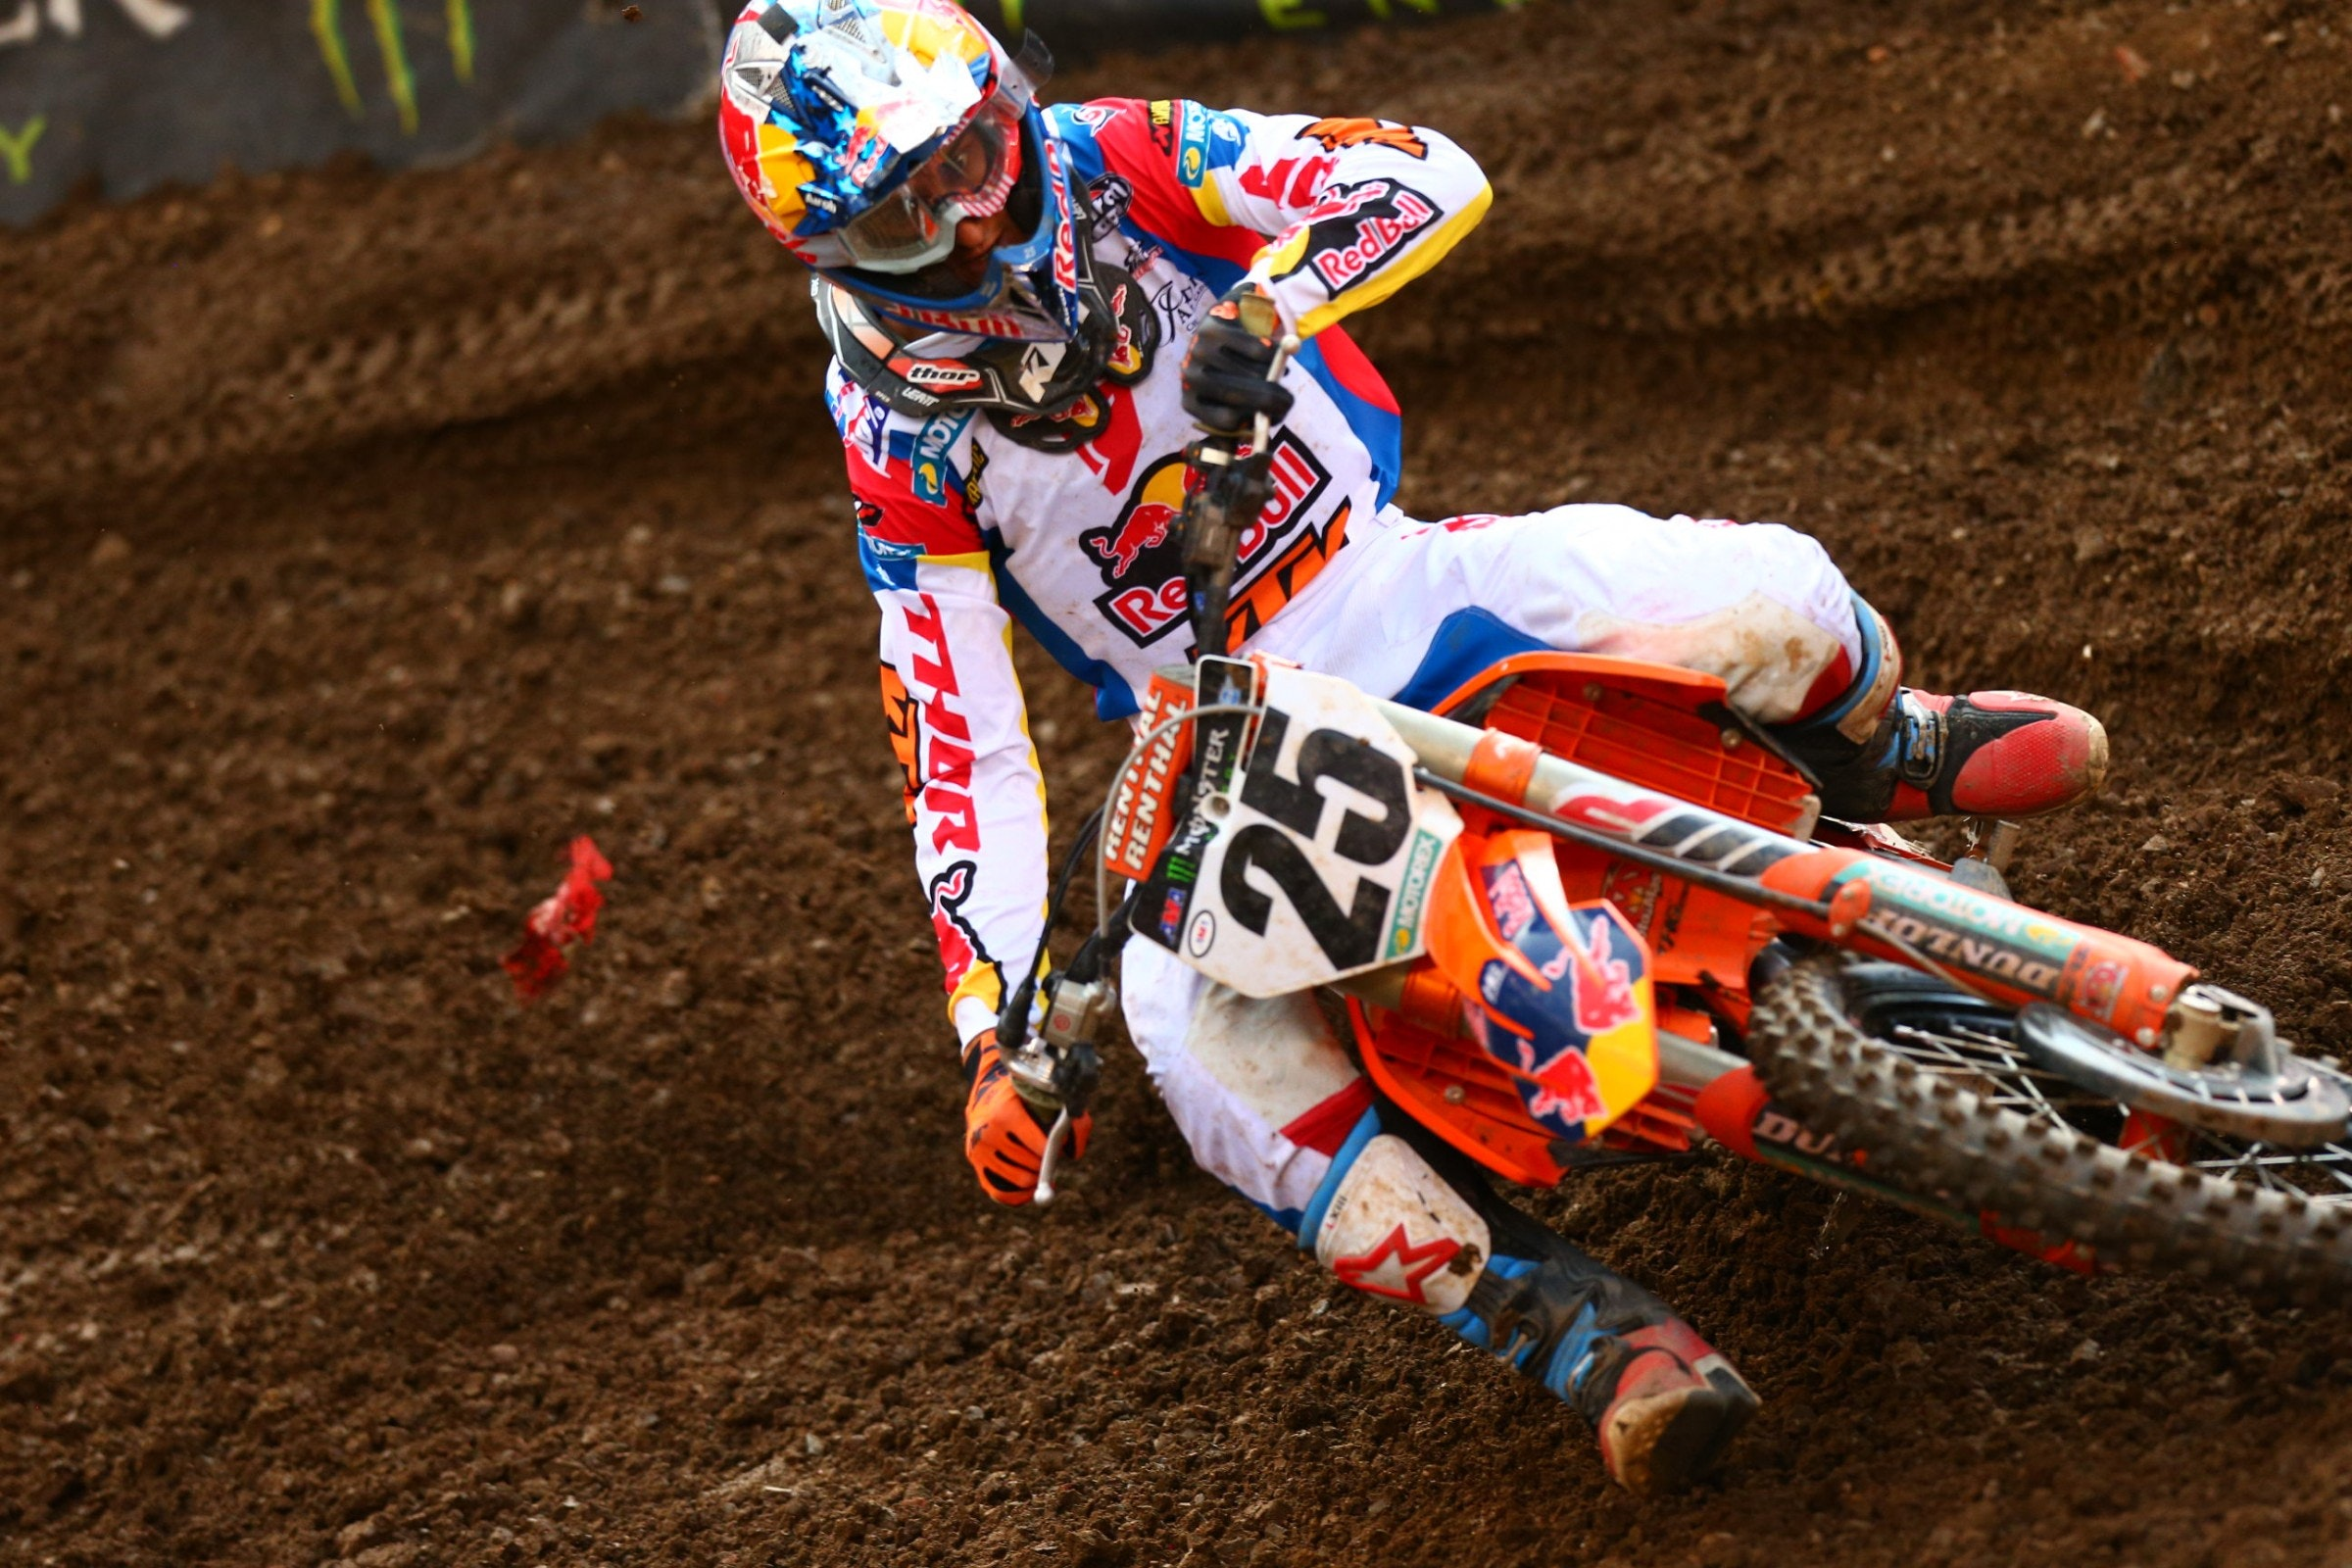 Musquin led the race from the 10 minute mark up until the very last lap.